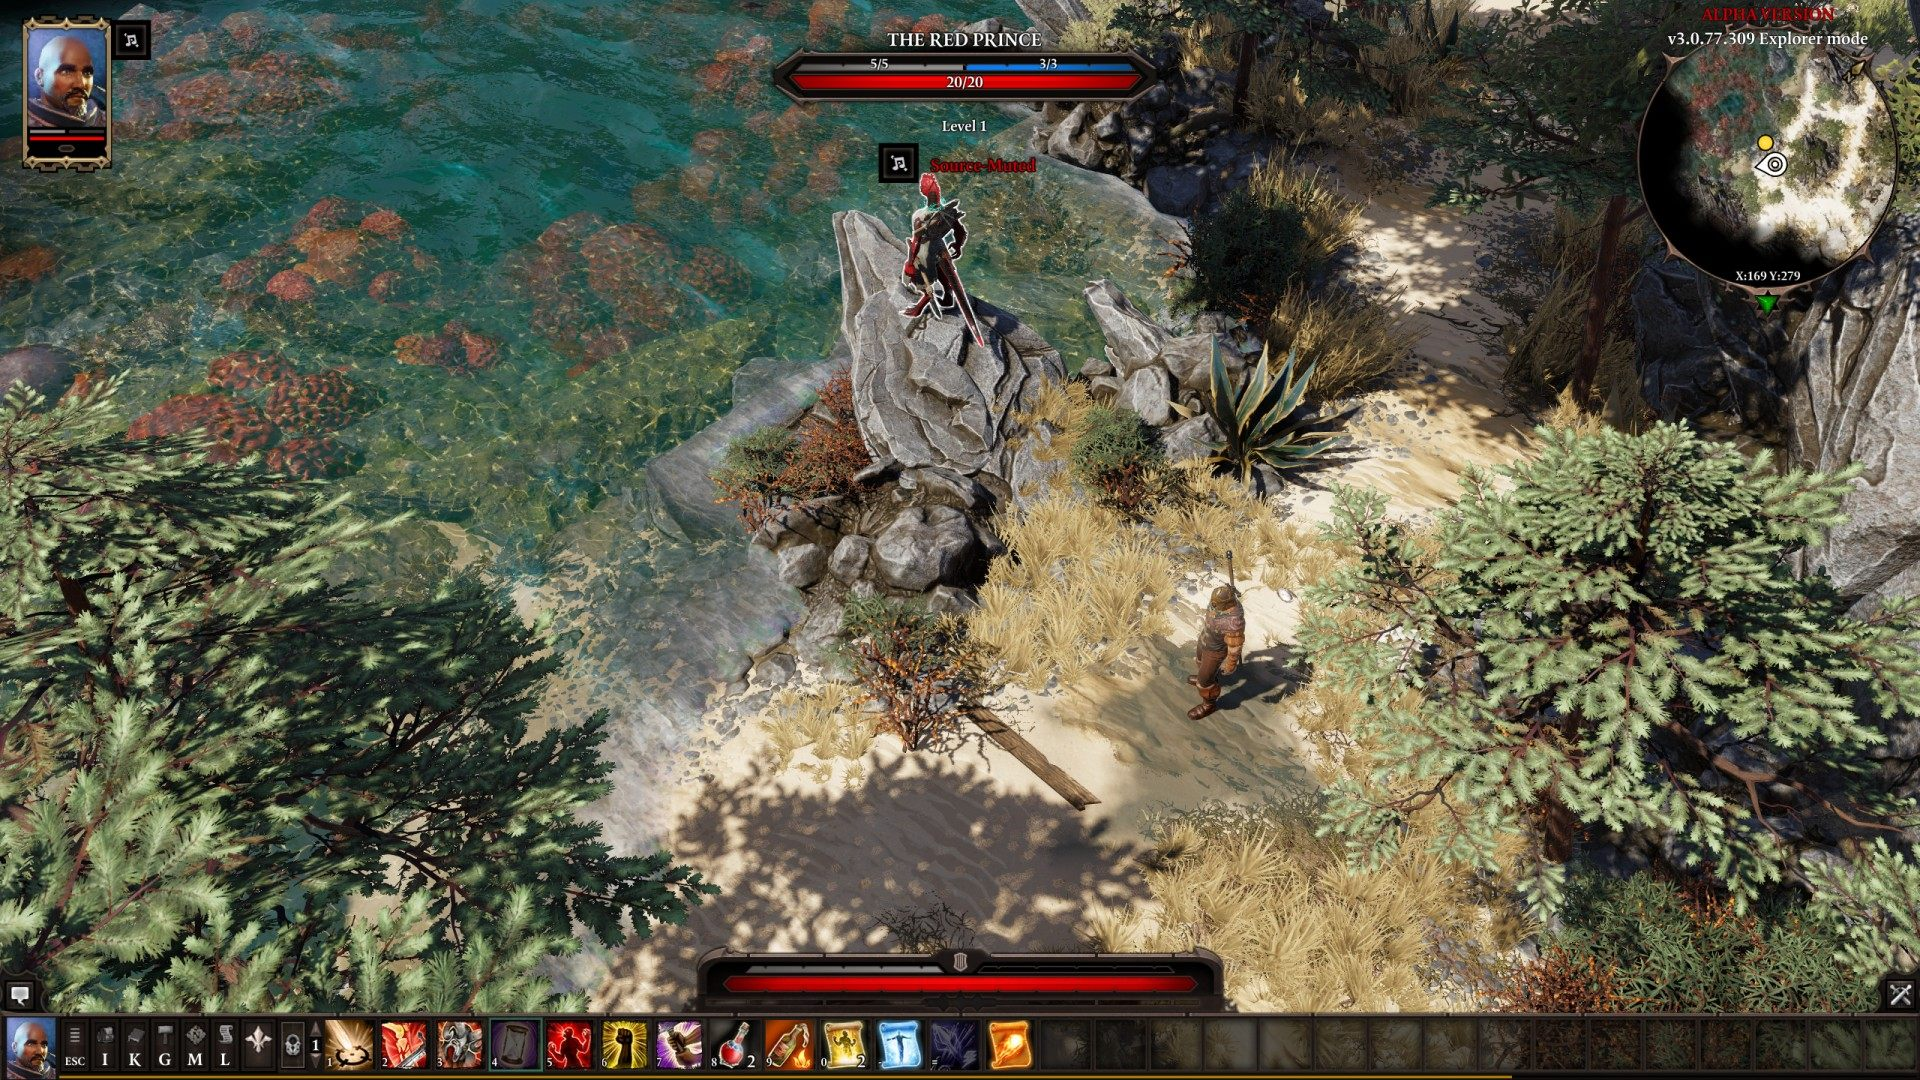 Party Members / Companions, Divinity: Original Sin 2 Points of interest